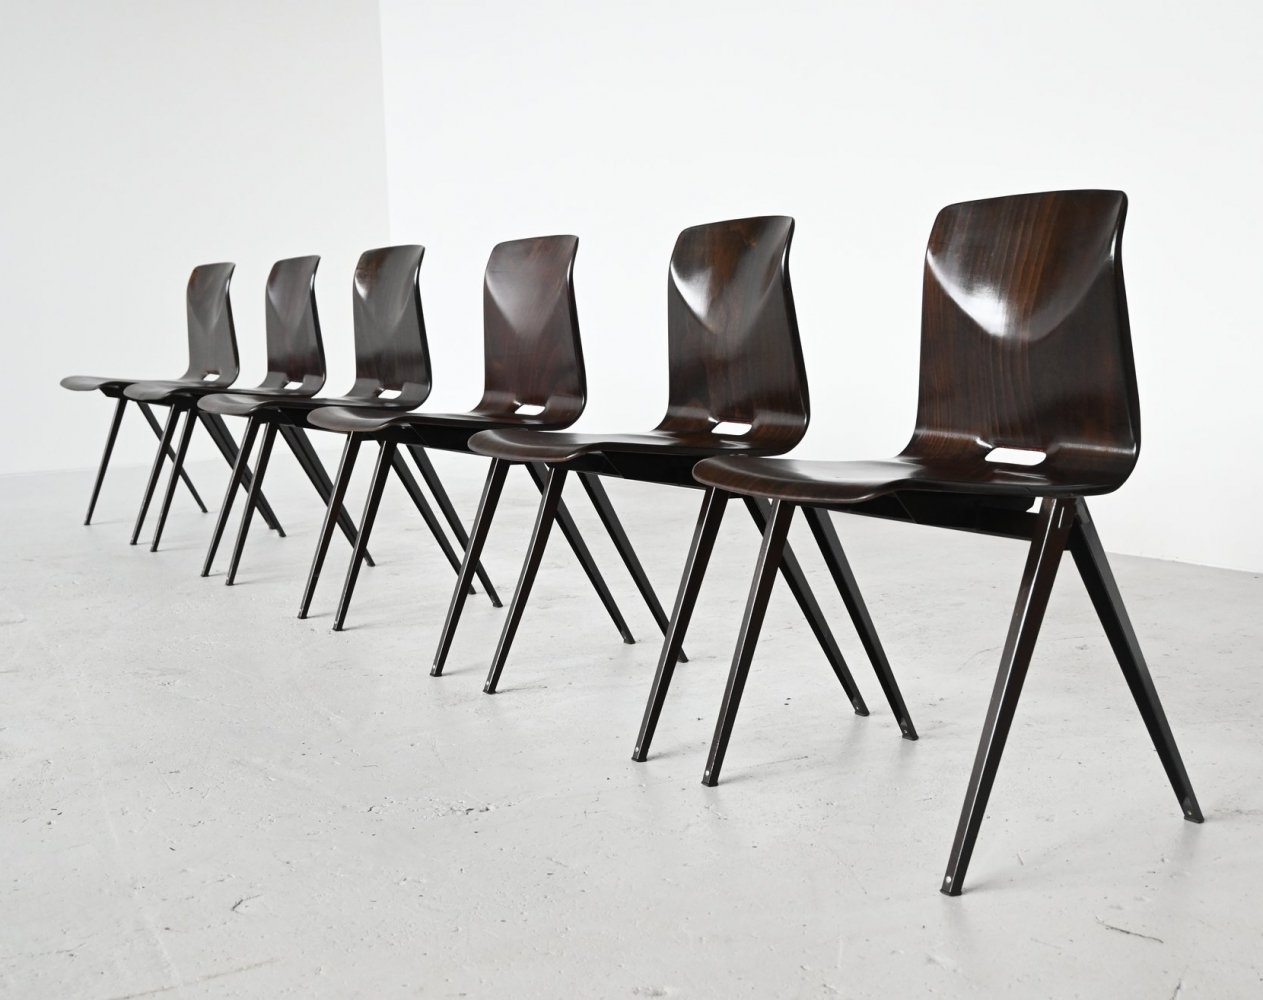 Elmar Flototto model S22 stacking chairs by Pagholz, Germany 1970